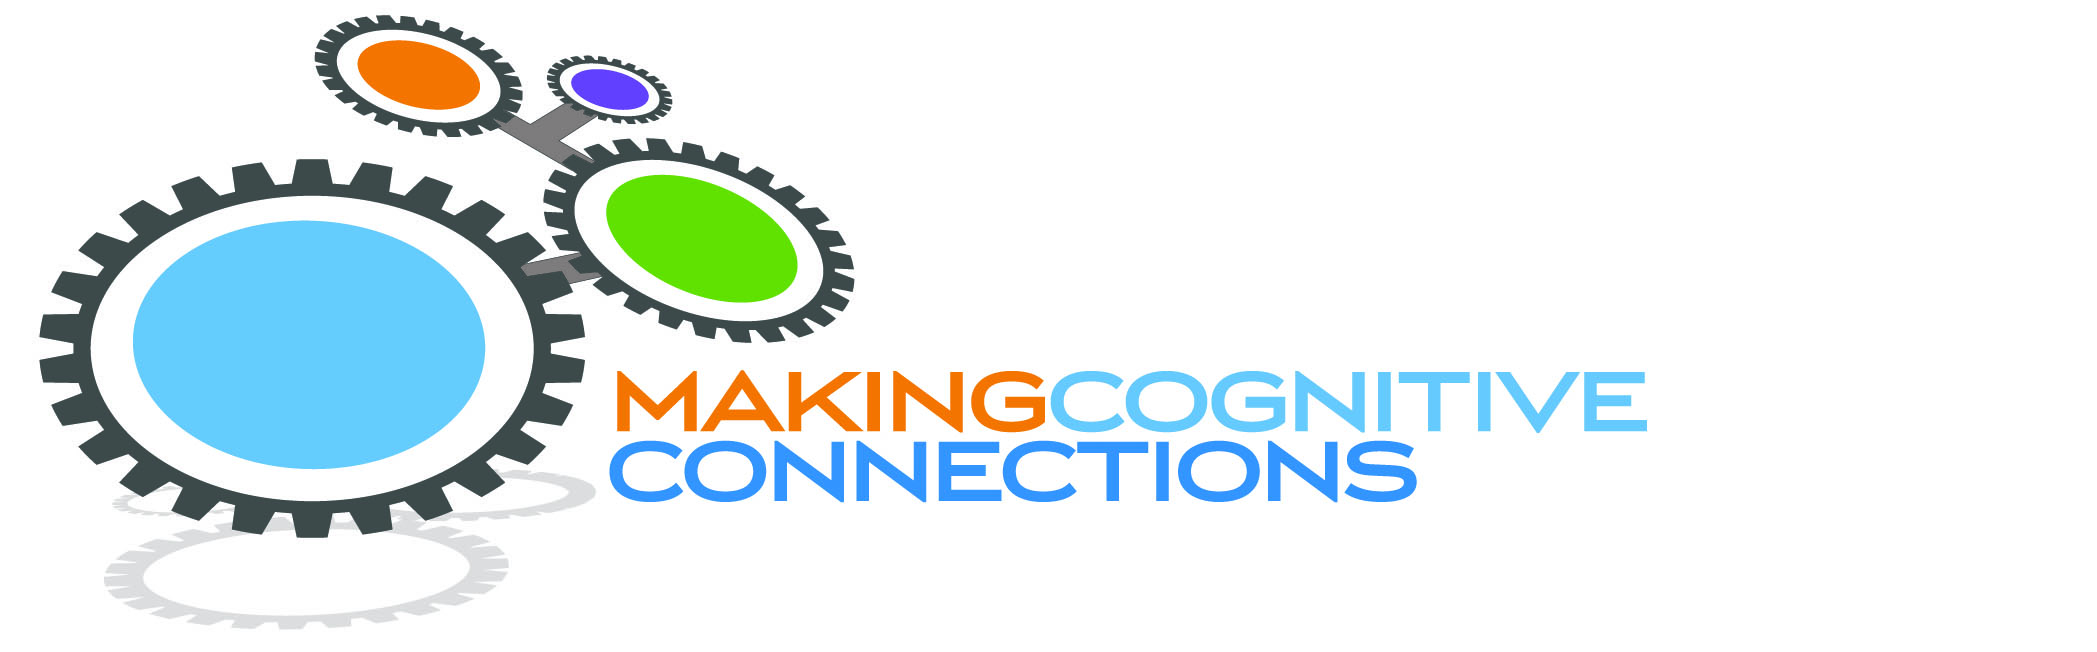 Making Cognitive Connections